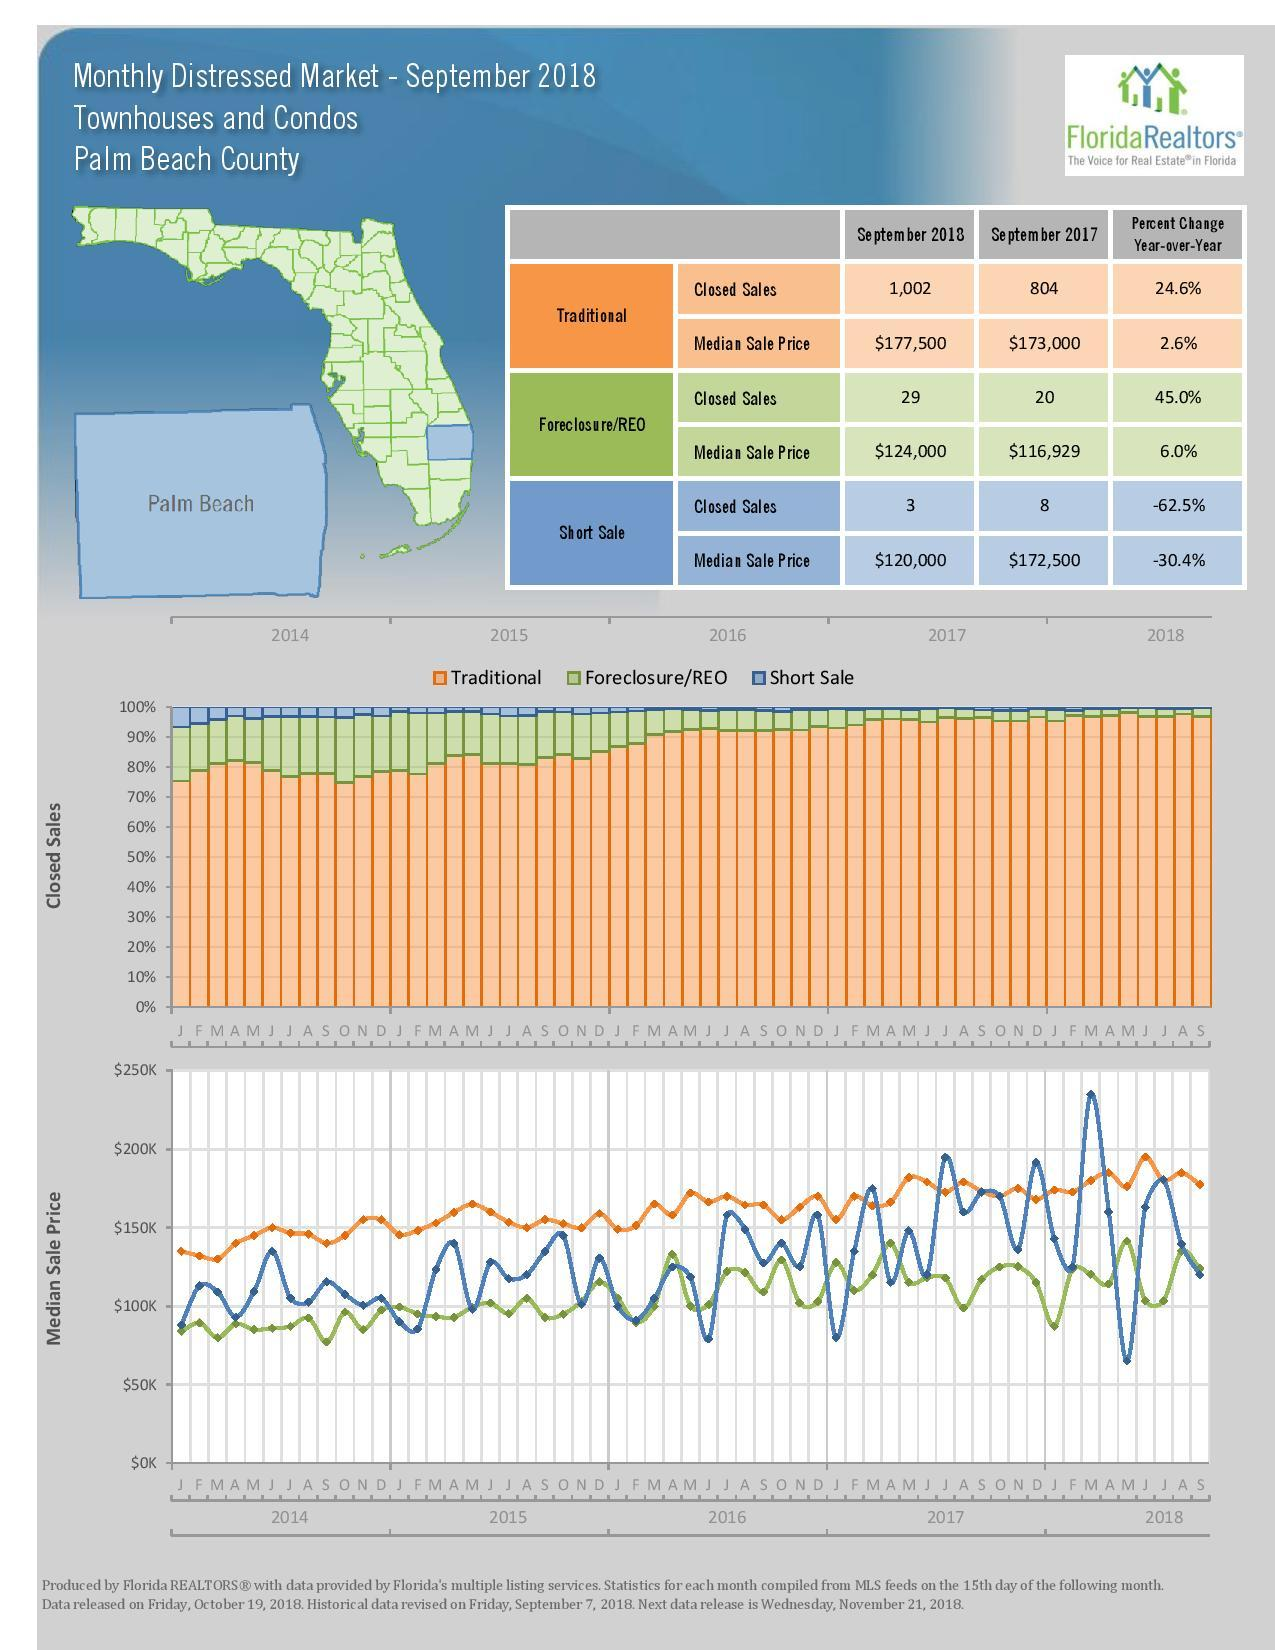 September 2018 Local Market Update, Palm Beach, FL (Florida Realtors)